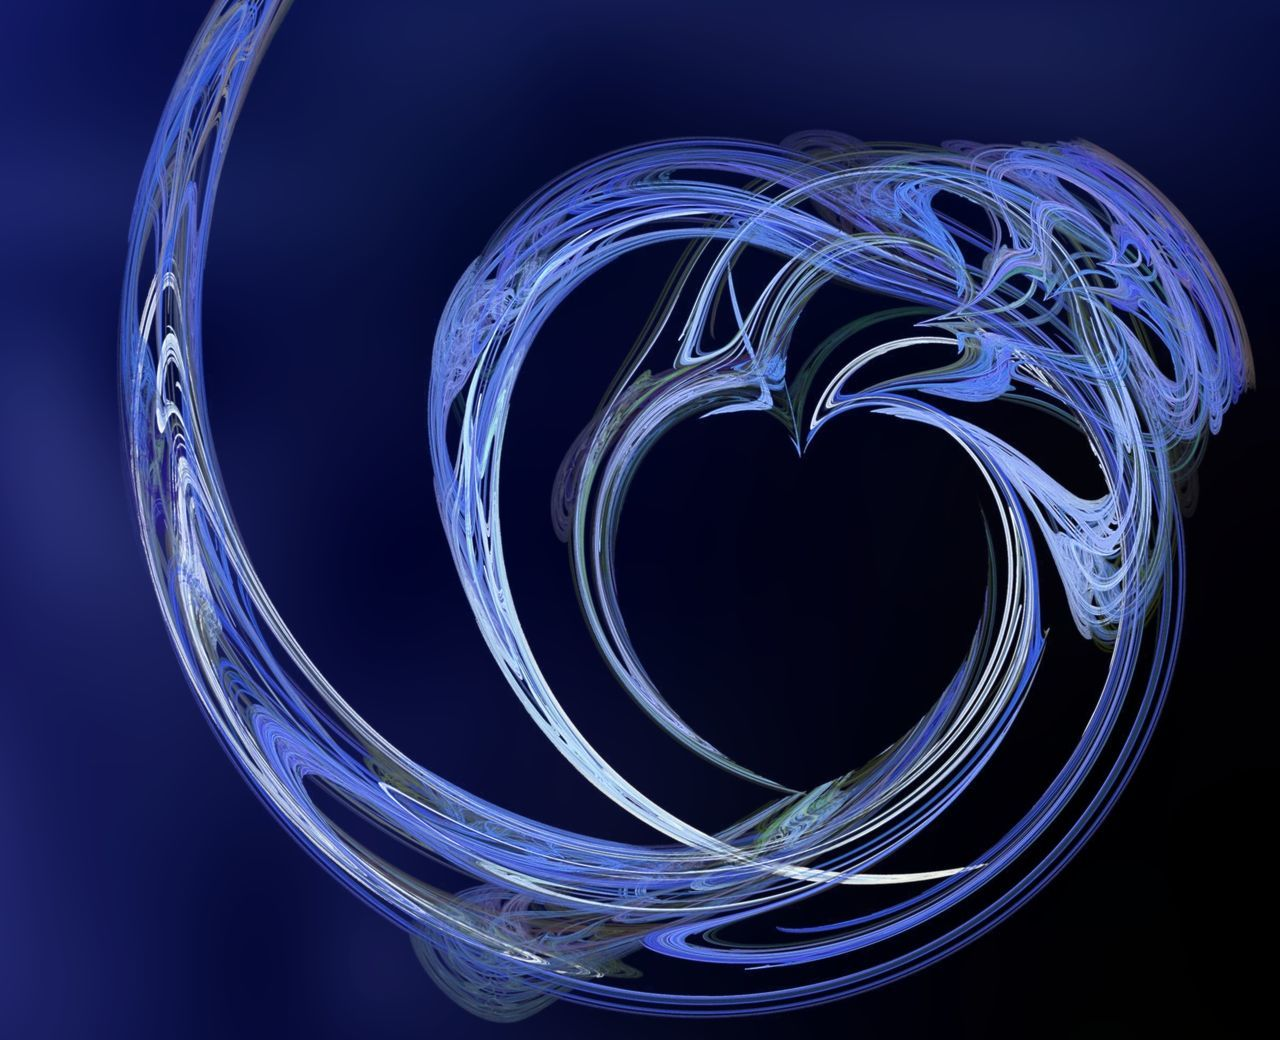 Fractal 9 Beautiful flows of different color build this fractal. Abstract Abstractions Art ArtWork Backdrop Background Black Blue Color Colorful Digital Digital Art Dynamic Effect Fractal Fractals Generated Geometry Heart Love Render Valentine Valentine's Day  Vibrant